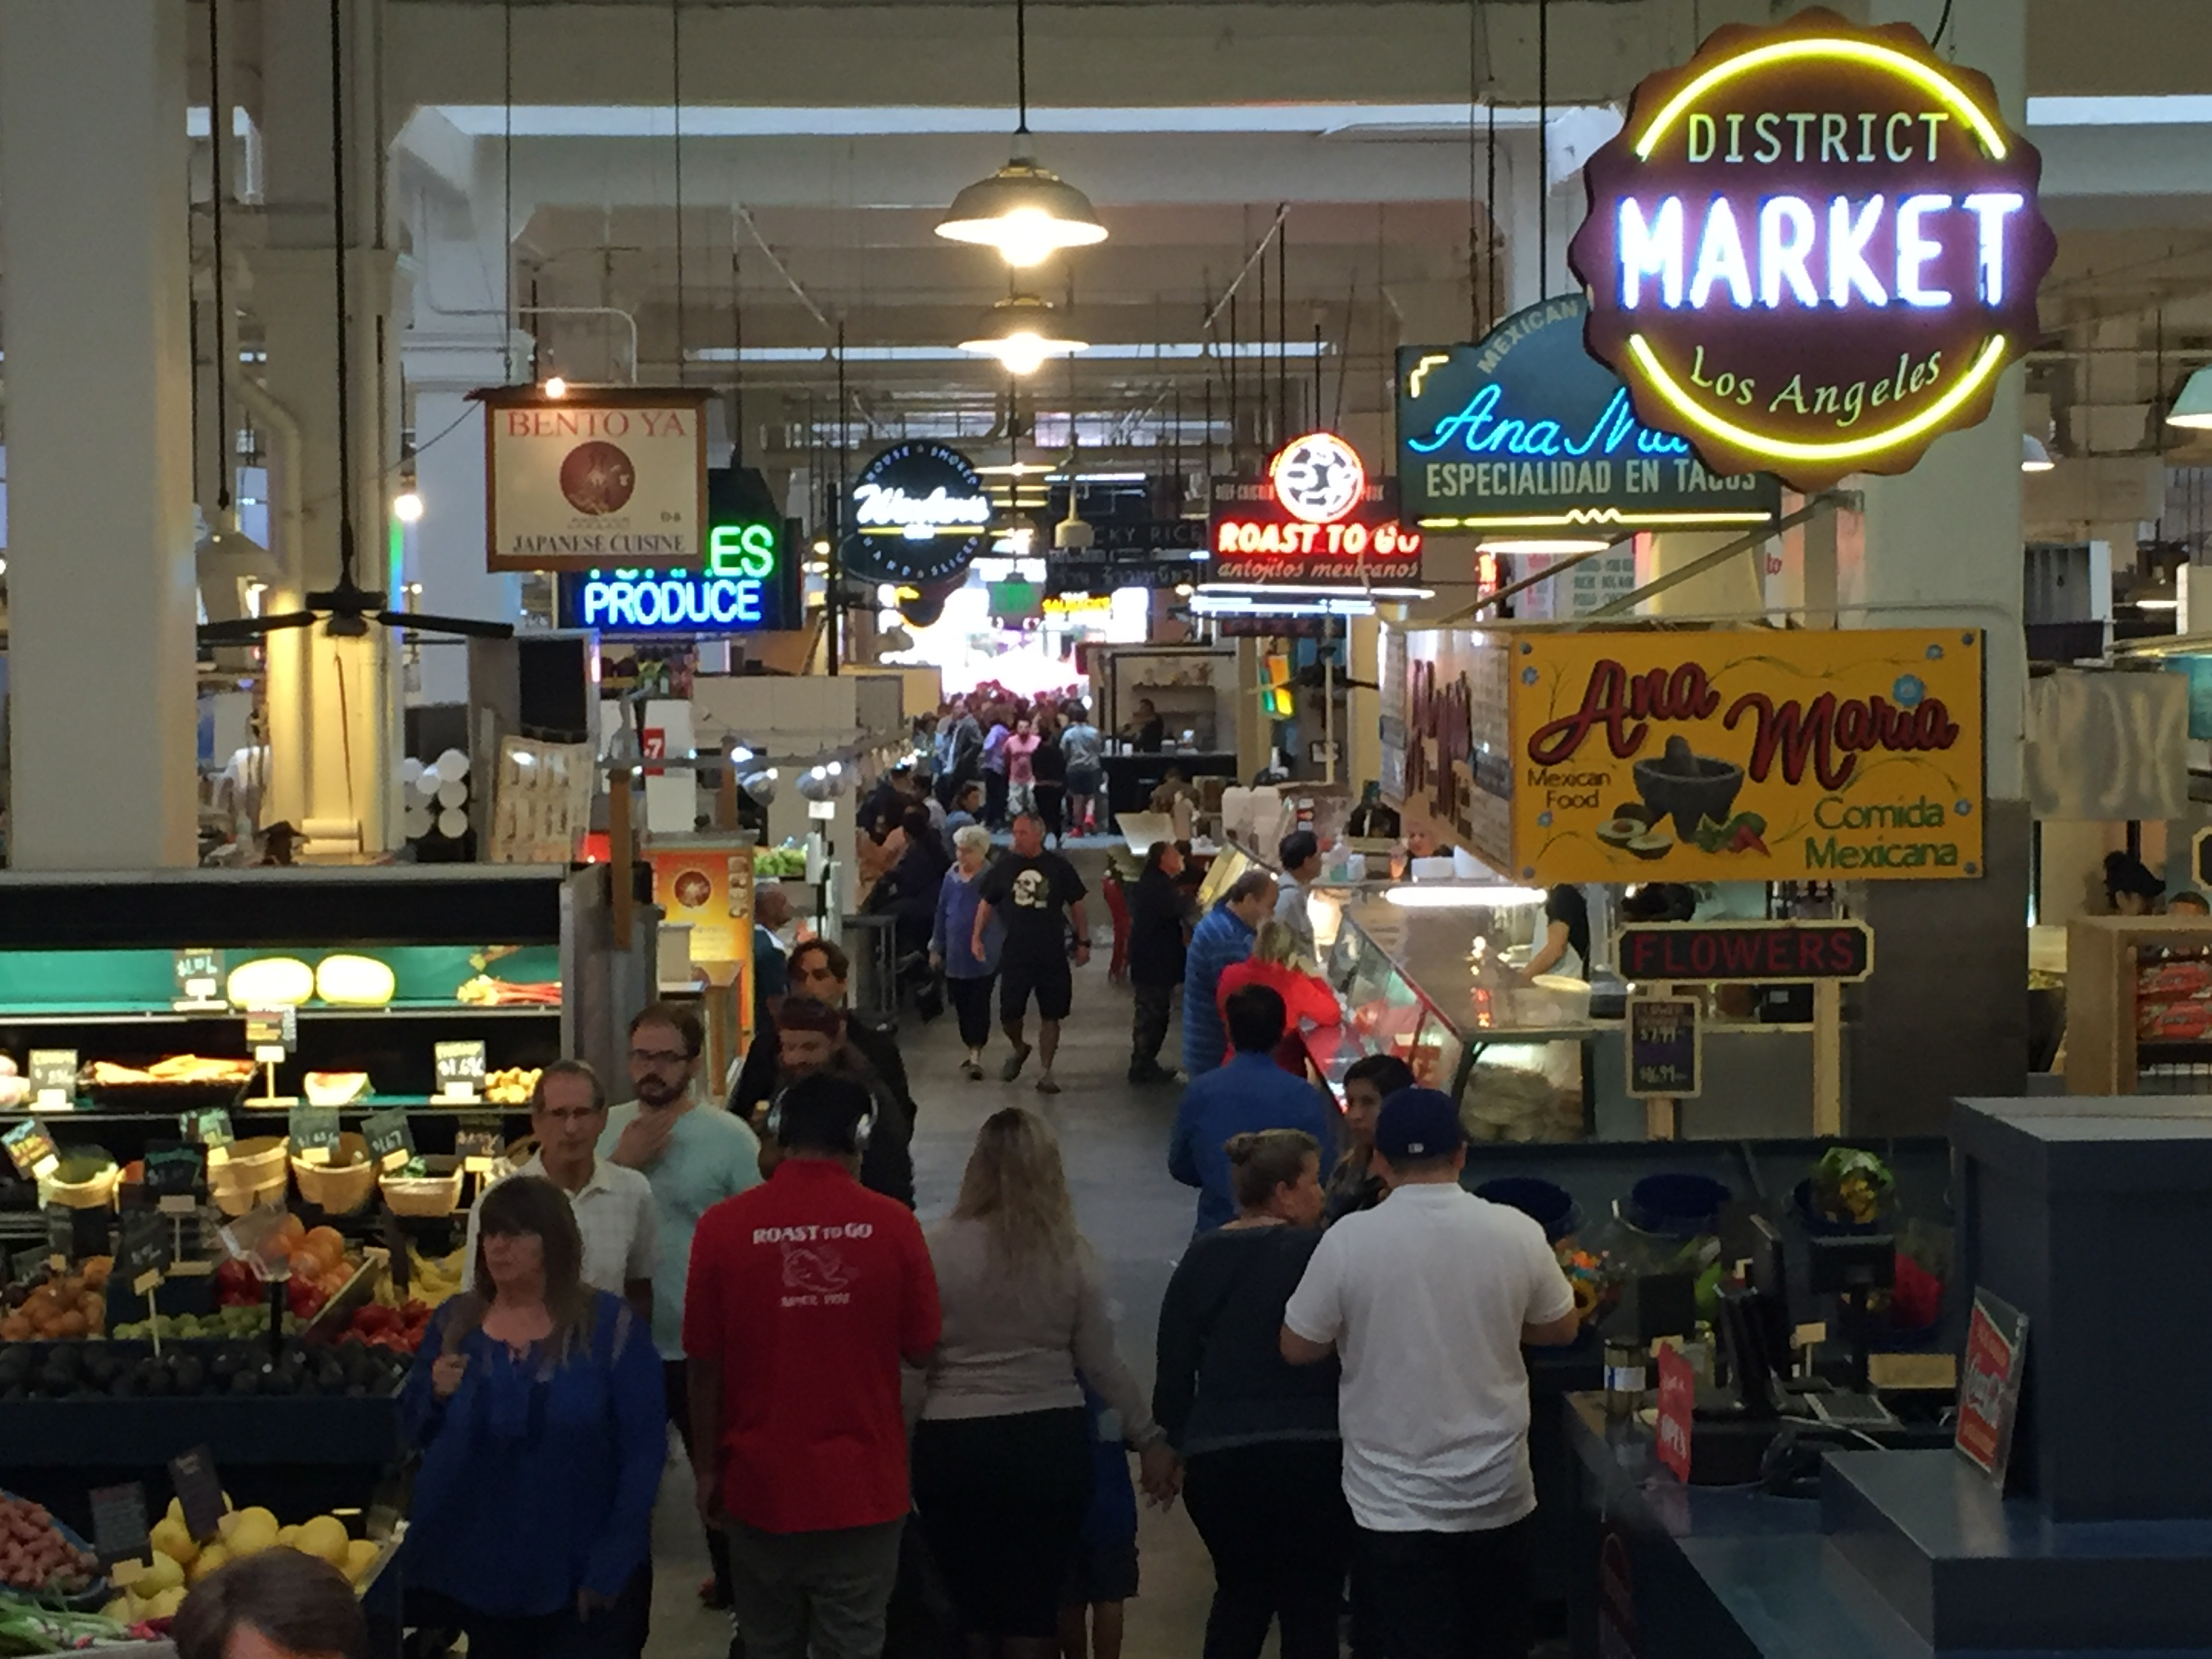 District Market in Los Angeles